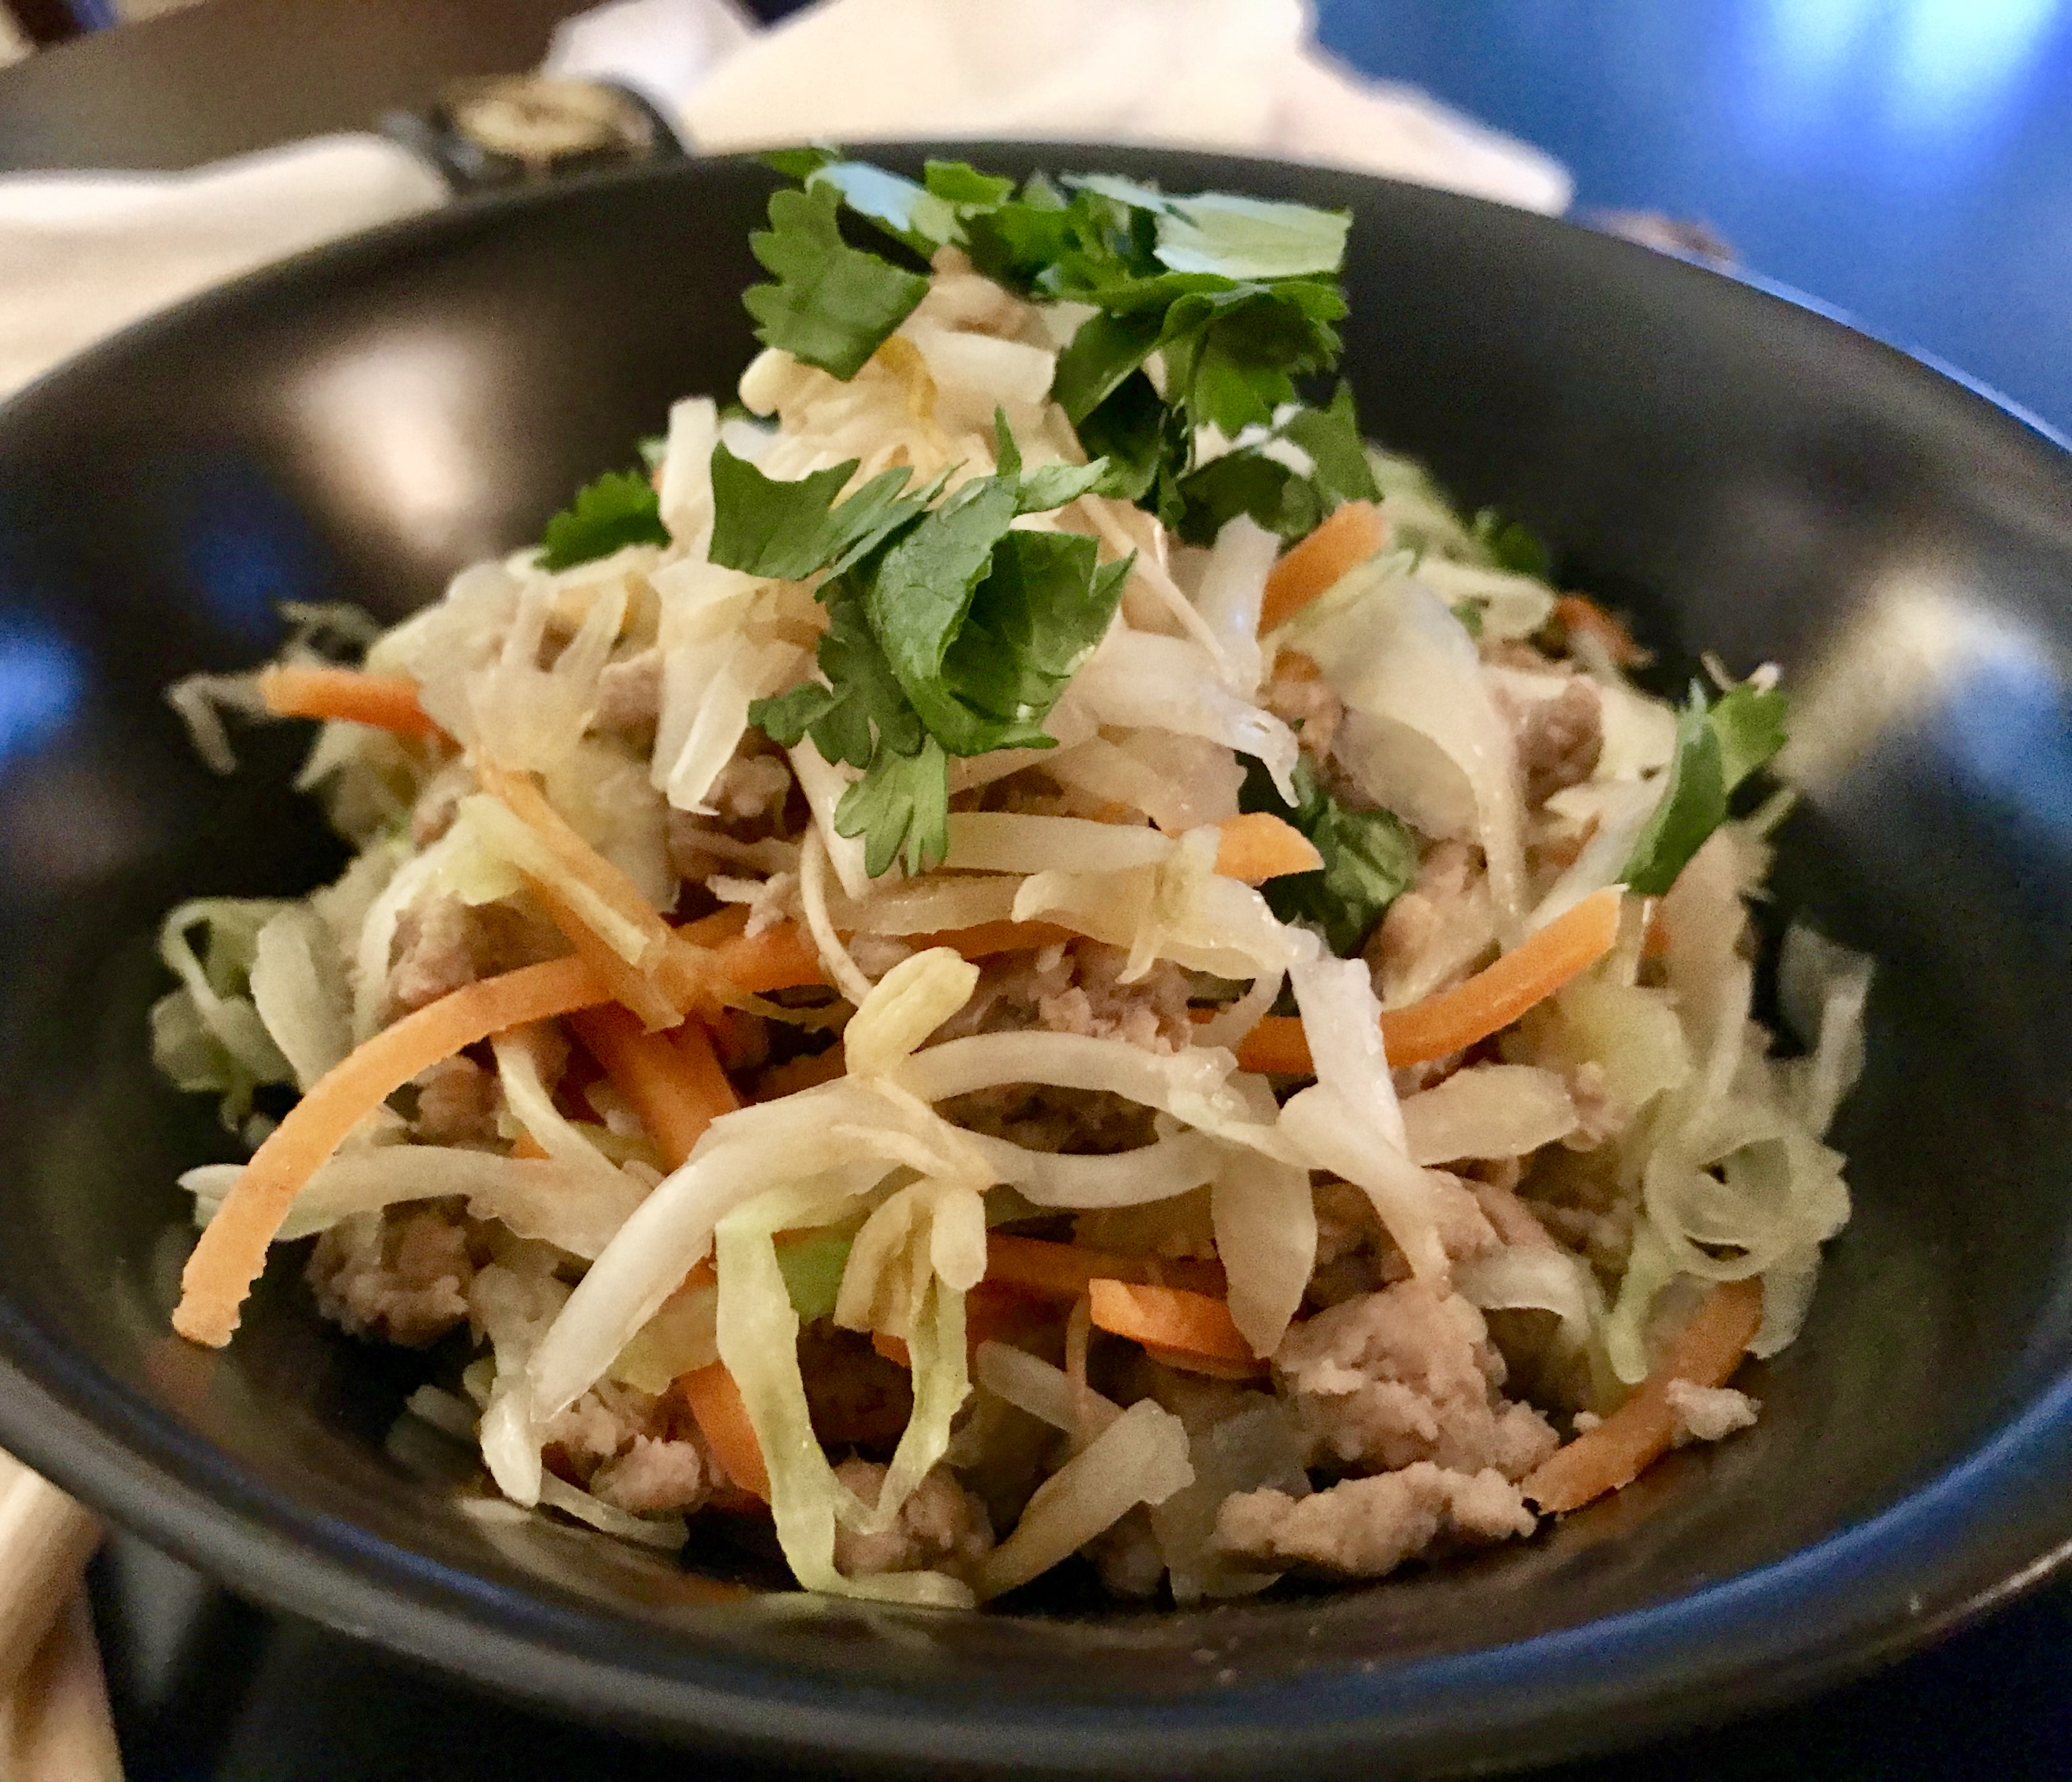 Egg Roll - Unwrapped in a bowl with garnishes